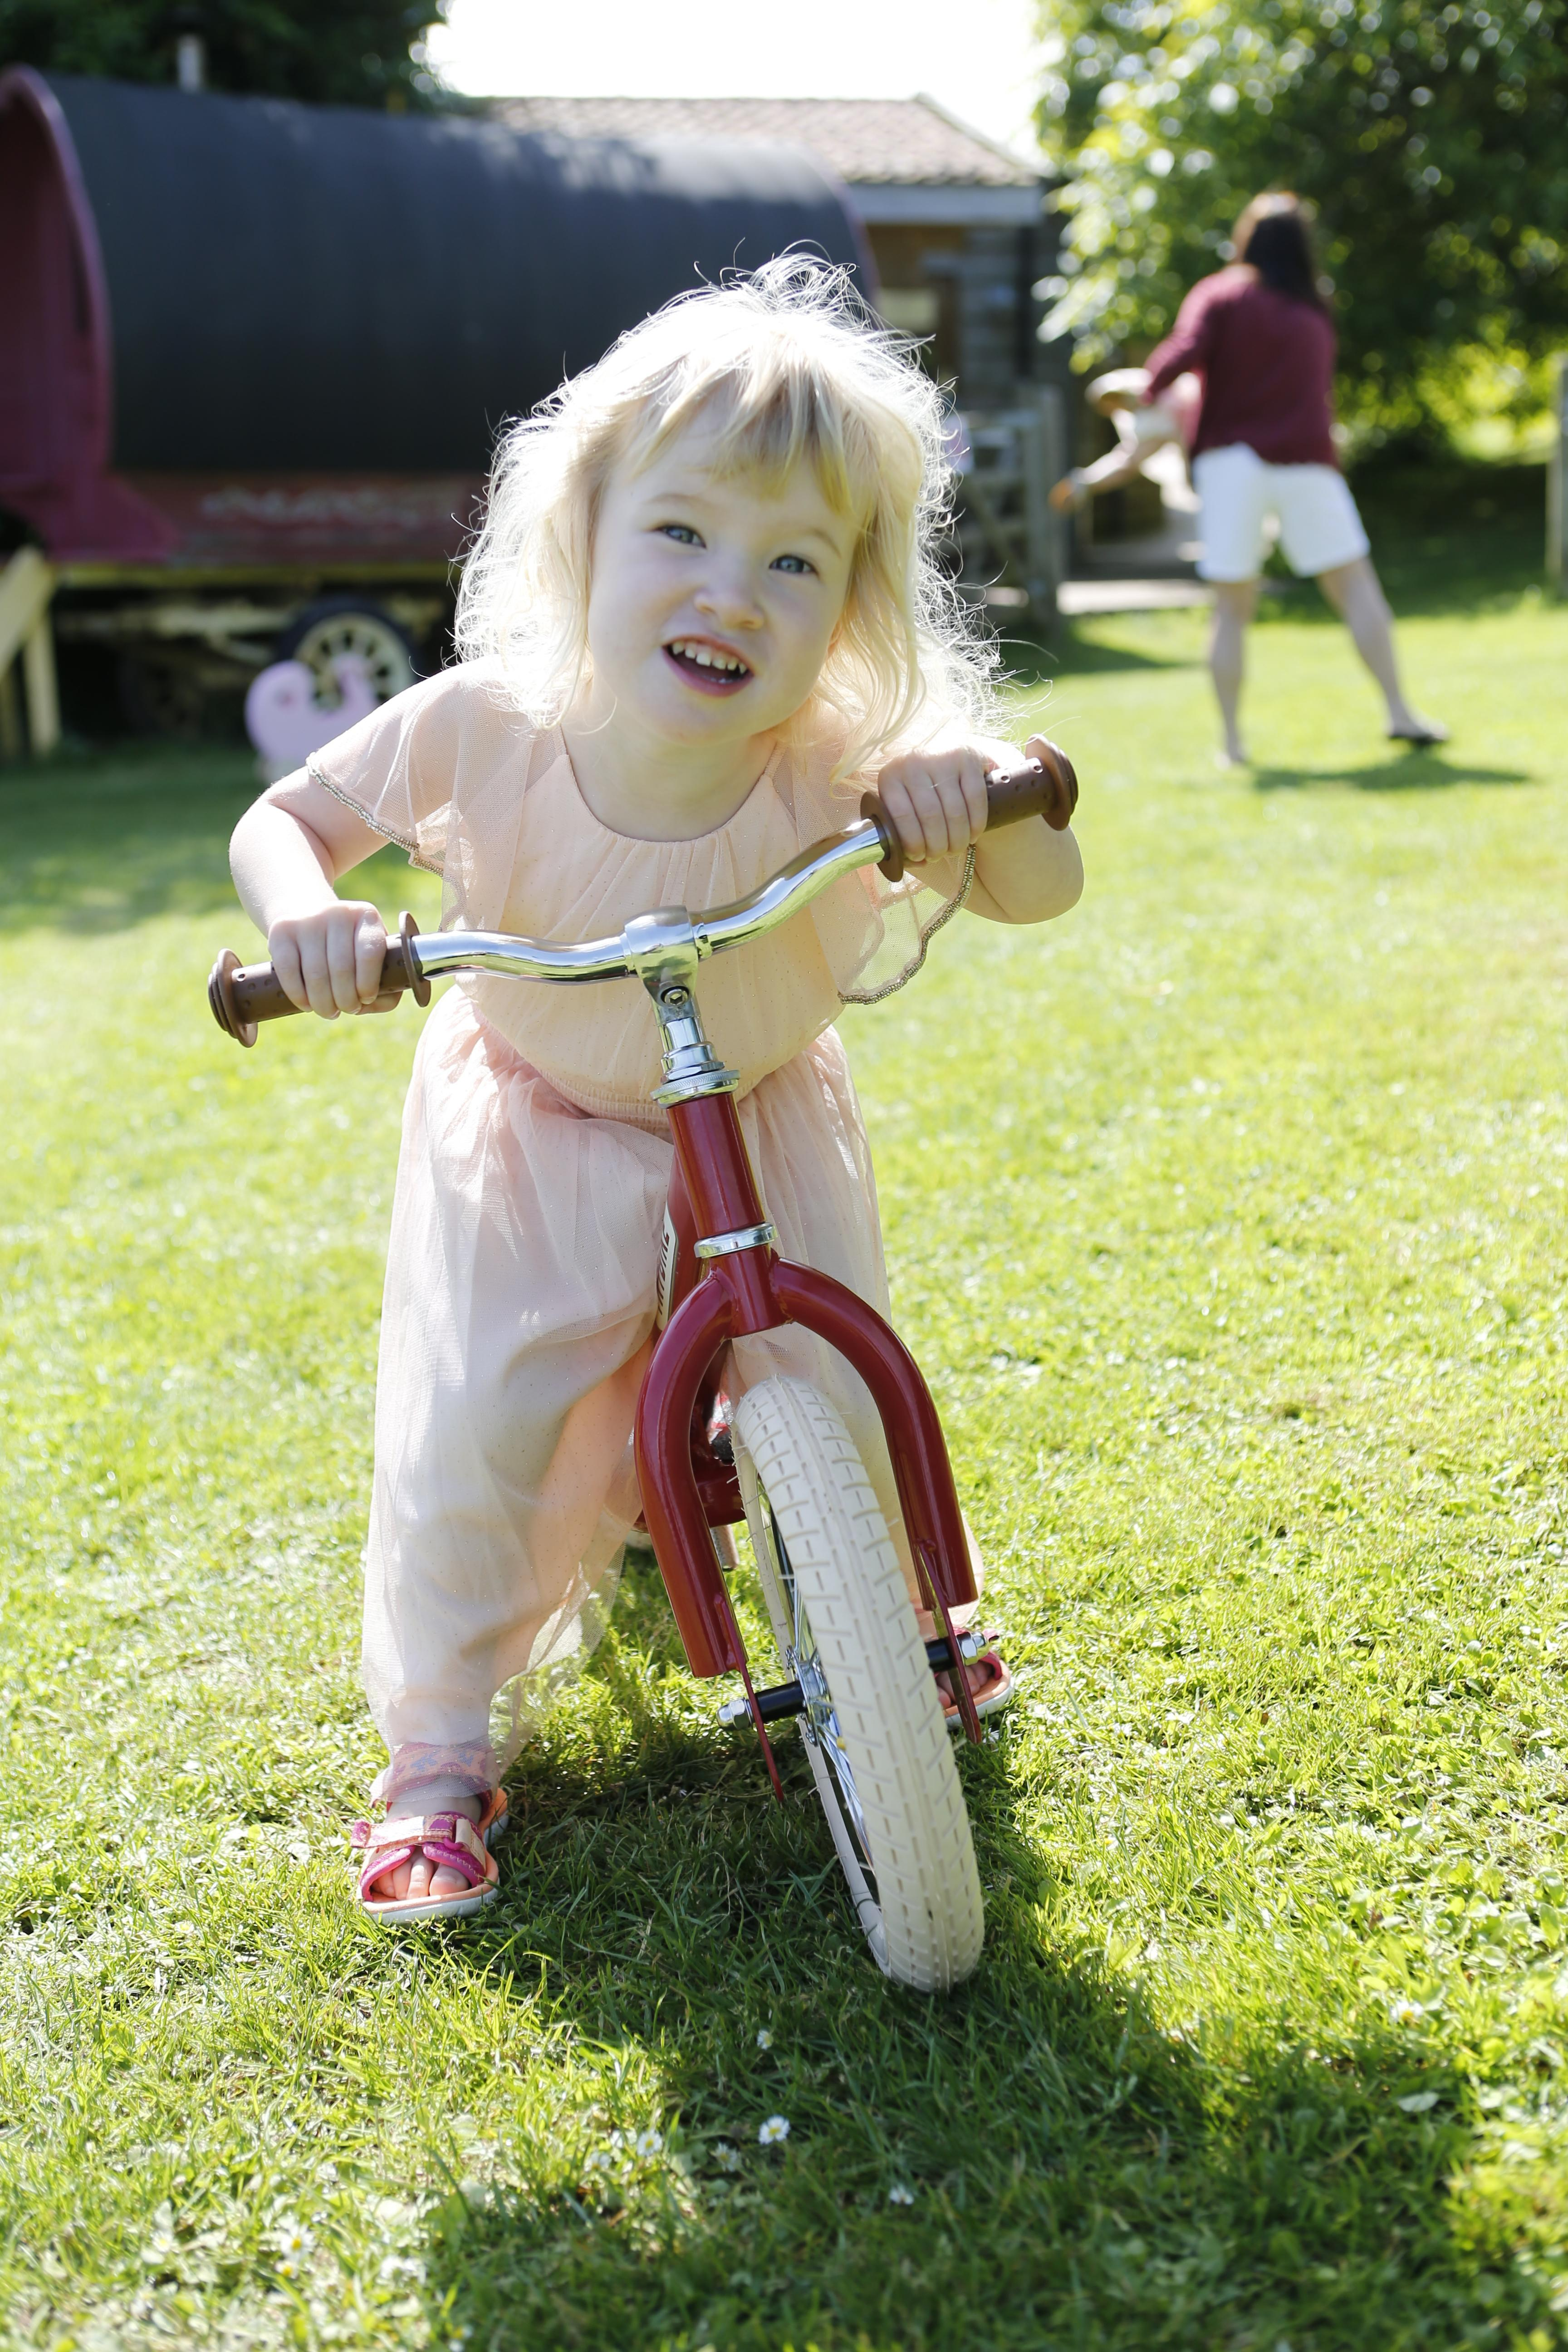 Little girl in a dress riding a red Trybike balance bike.